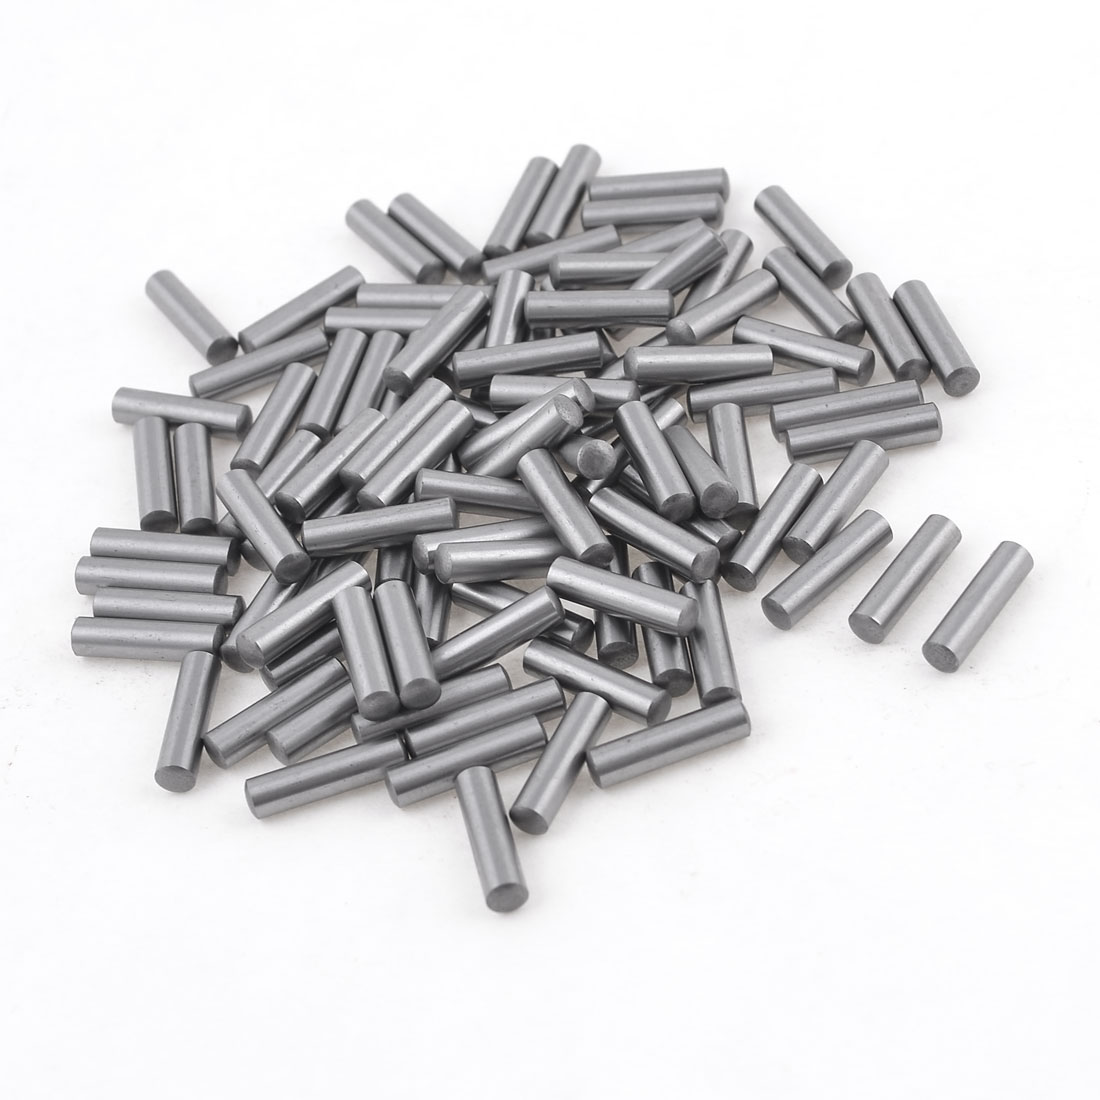 100 Pcs 3.8mm x 15.8mm Parallel Dowel Pins Fasten Elements